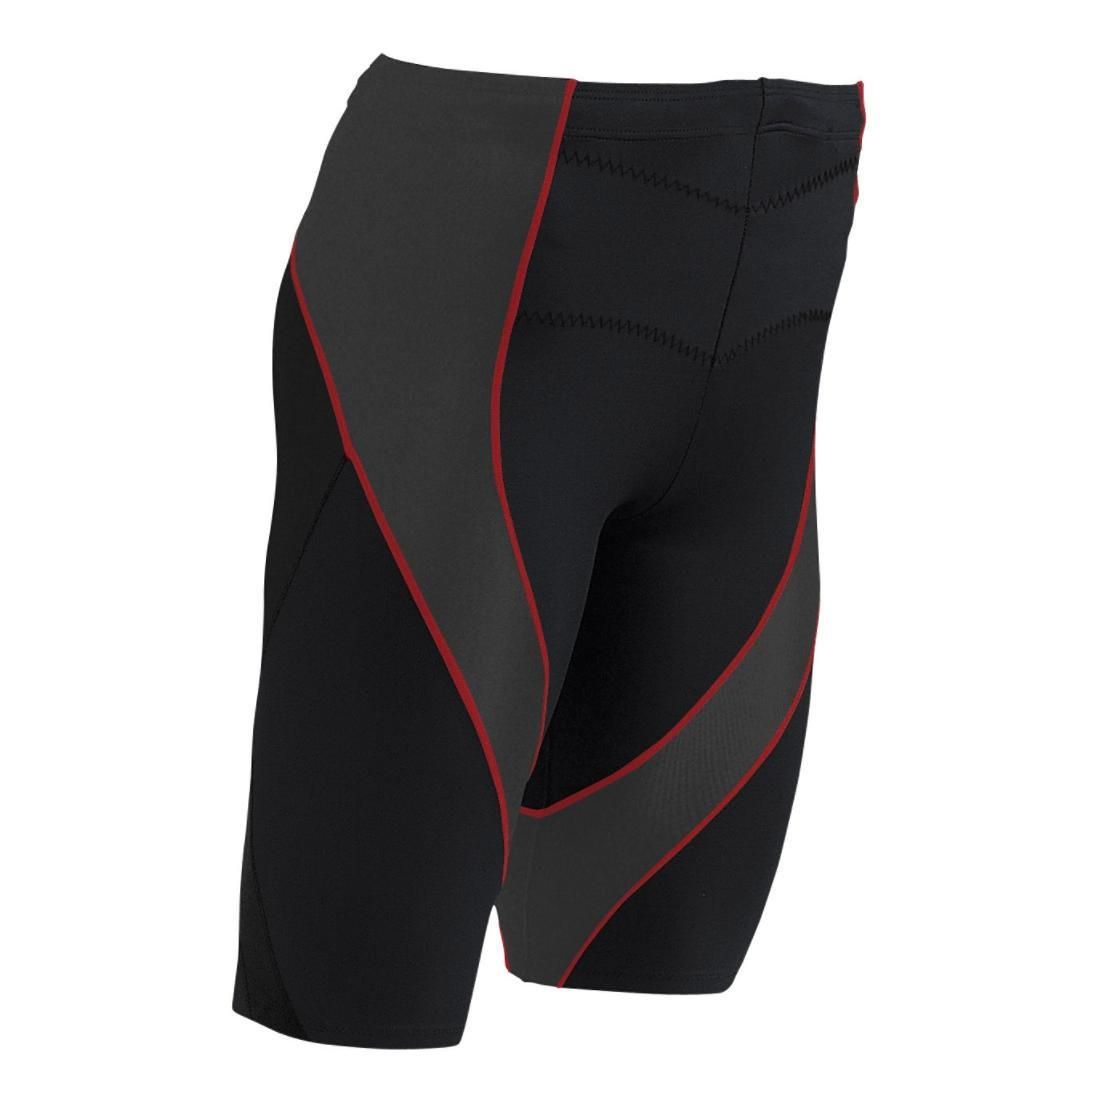 CW-X Conditioning Wear Men's Pro Shorts, Small, Black/Grey/Orange by CW-X (Image #1)